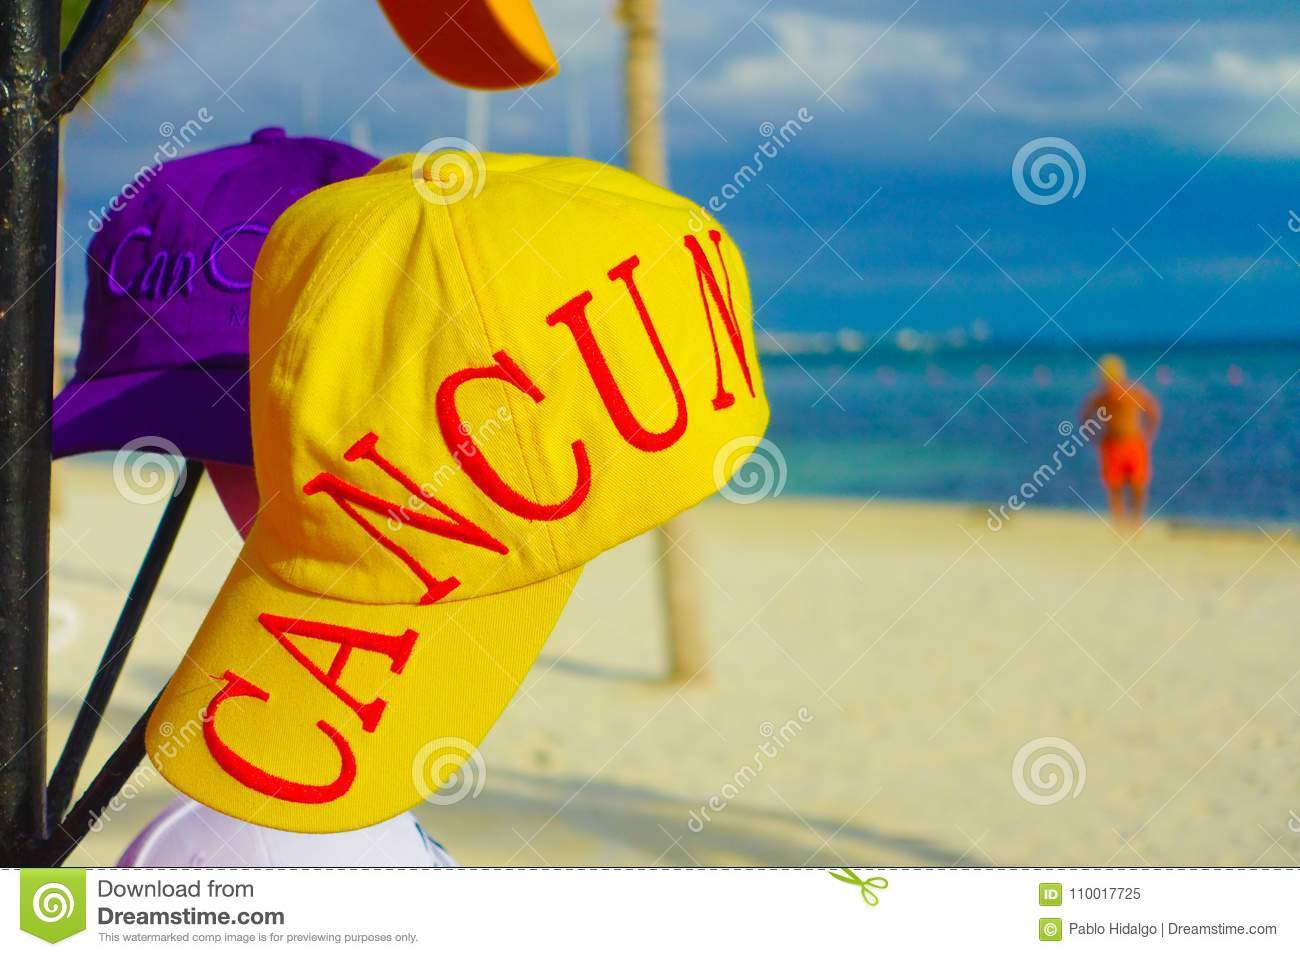 CANCUN, MEXICO - JANUARY 10, 2018: Close up of a yellow sport hat with a Cancun word printed, with a gorgeous white sand